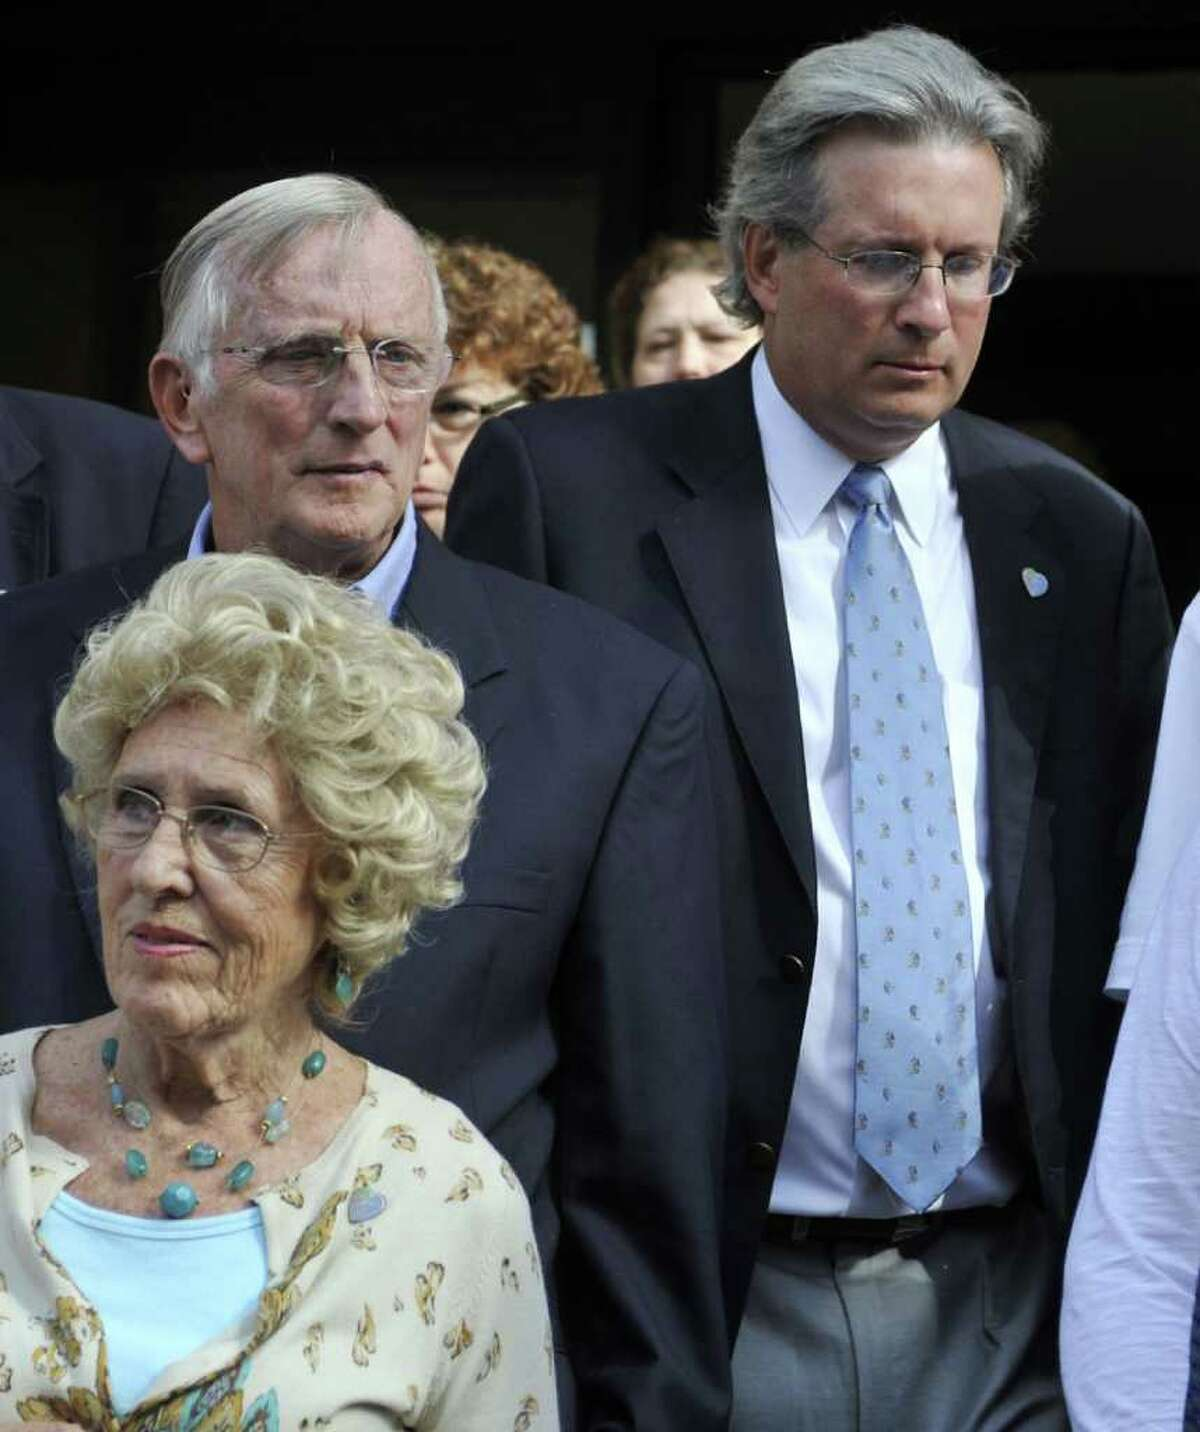 Dr. William Petit Jr., right, leaves court with his father, William Petit, left, and his mother-in-law Marybelle Hawke, bottom left, after the first day of the trial of Steven Hayes at Superior Court in New Haven, Conn., on Monday, Sept. 13, 2010. Prosecutors allege Hayes and Joshua Komisarjevsky killed Jennifer Hawke-Petit and her two daughters, 17-year-old Hayley and 11-year-old Michaela, in their Cheshire, Conn. home in July 2007. (AP Photo/Jessica Hill)